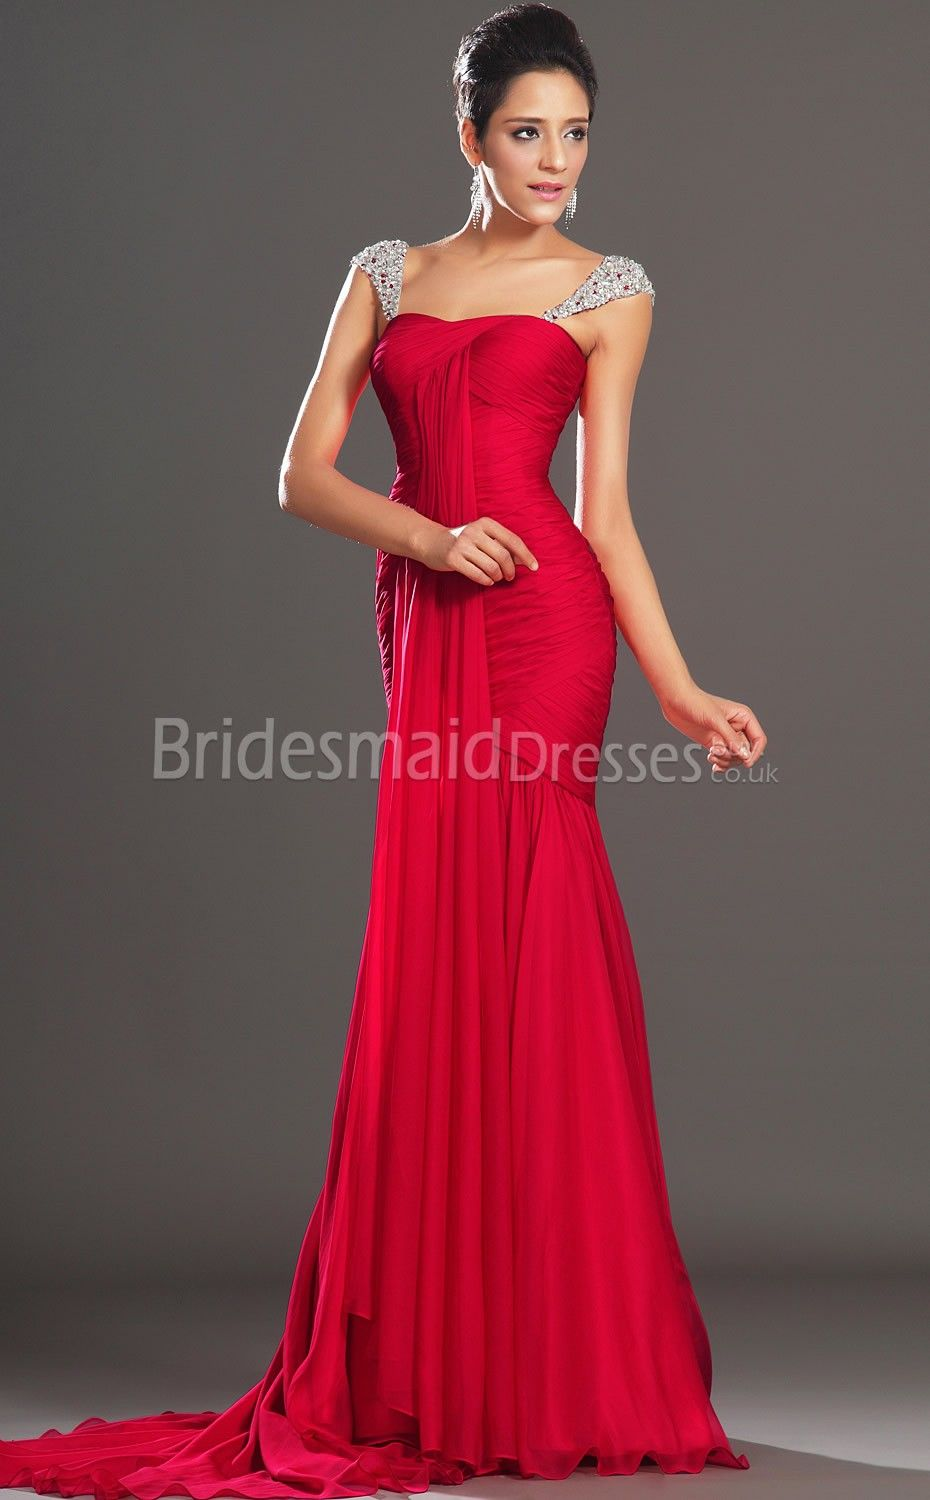 Dark red floor length dress google search my closet dark red floor length dress google search ombrellifo Images